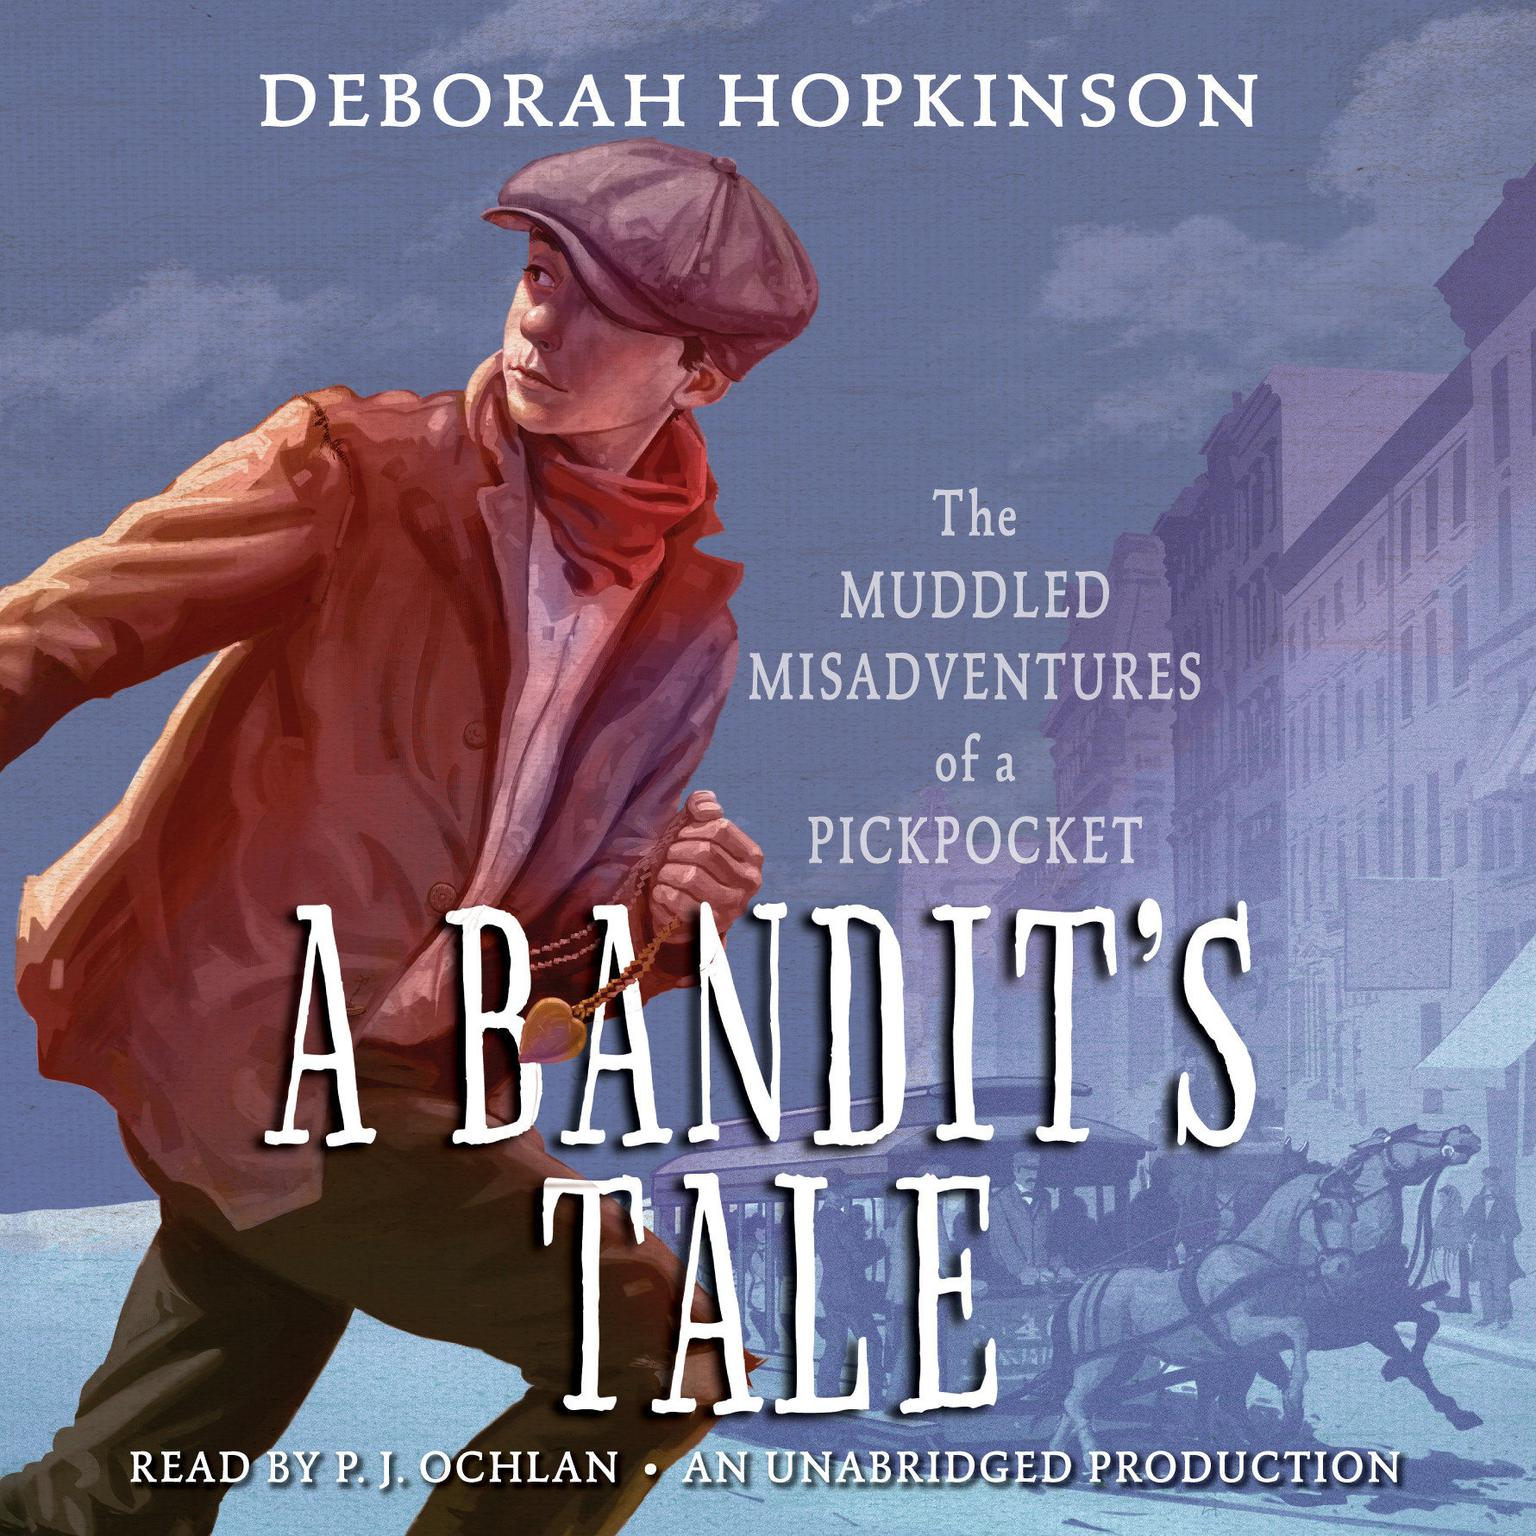 Printable A Bandit's Tale:  The Muddled Misadventures of a Pickpocket Audiobook Cover Art